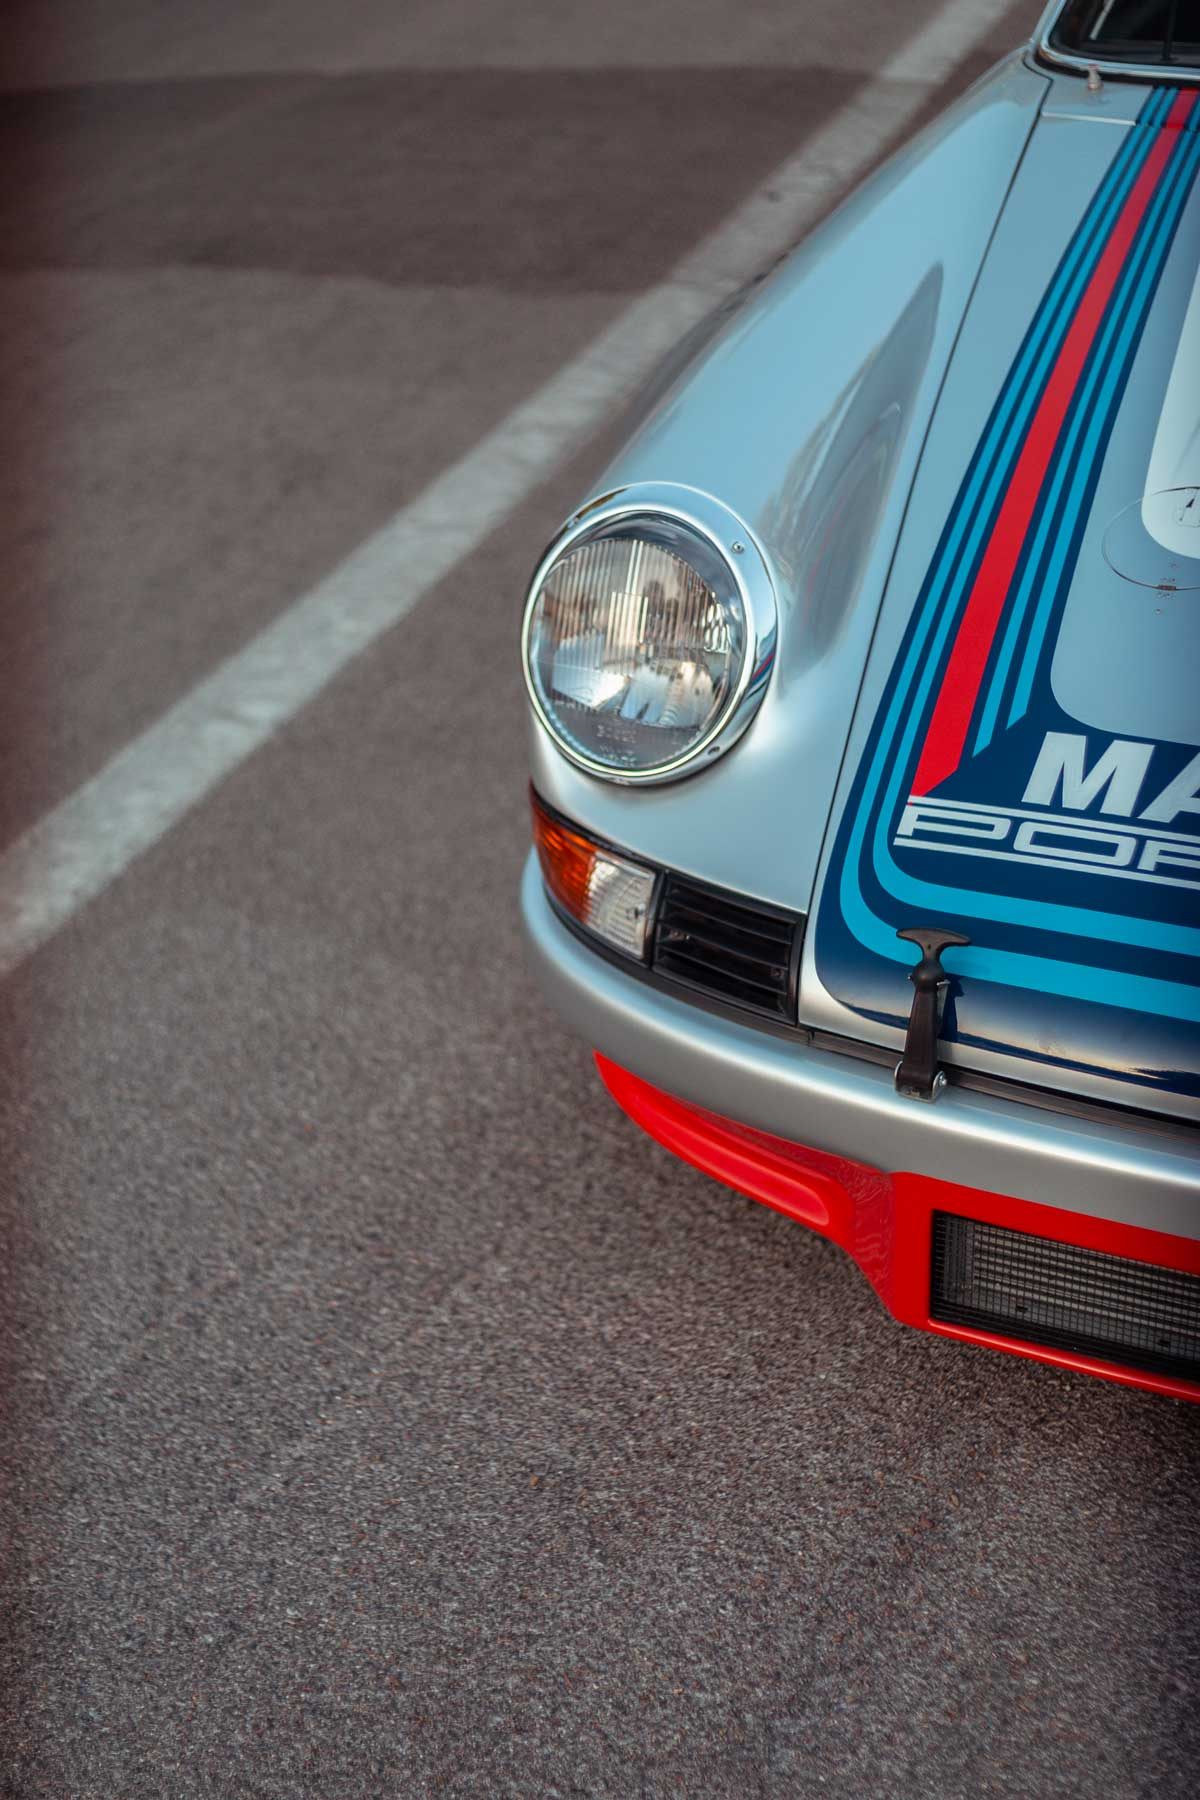 1973 Targa Florio winning Martini Racing Porsche Carrera RSR (R6) restoration by Maxted-Page